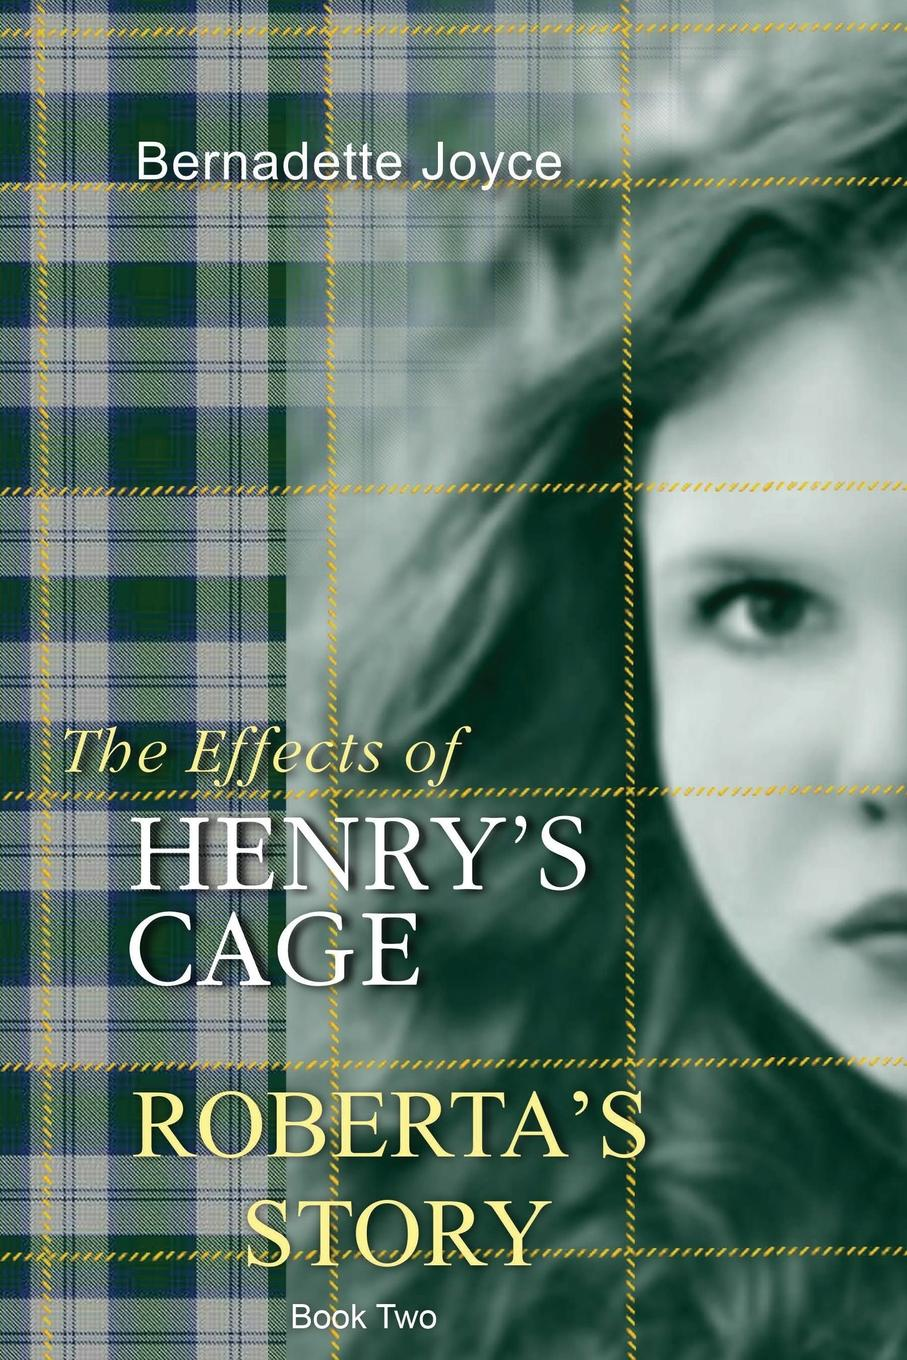 Bernadette Joyce The effects of Henry.s cage. Roberta.s story.